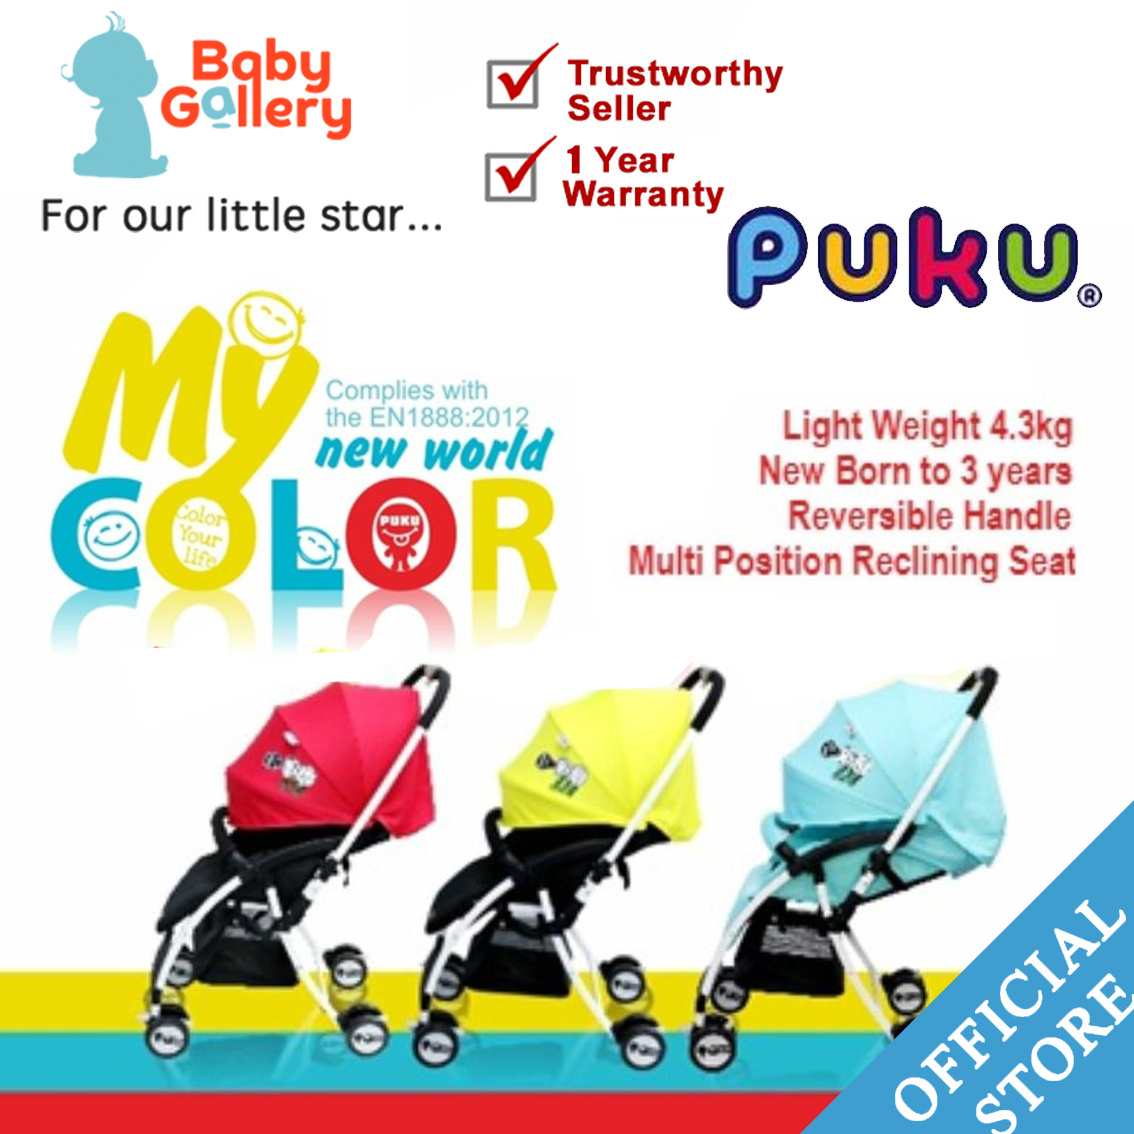 Joint purchases - how to buy a plane at the price of a baby carriage